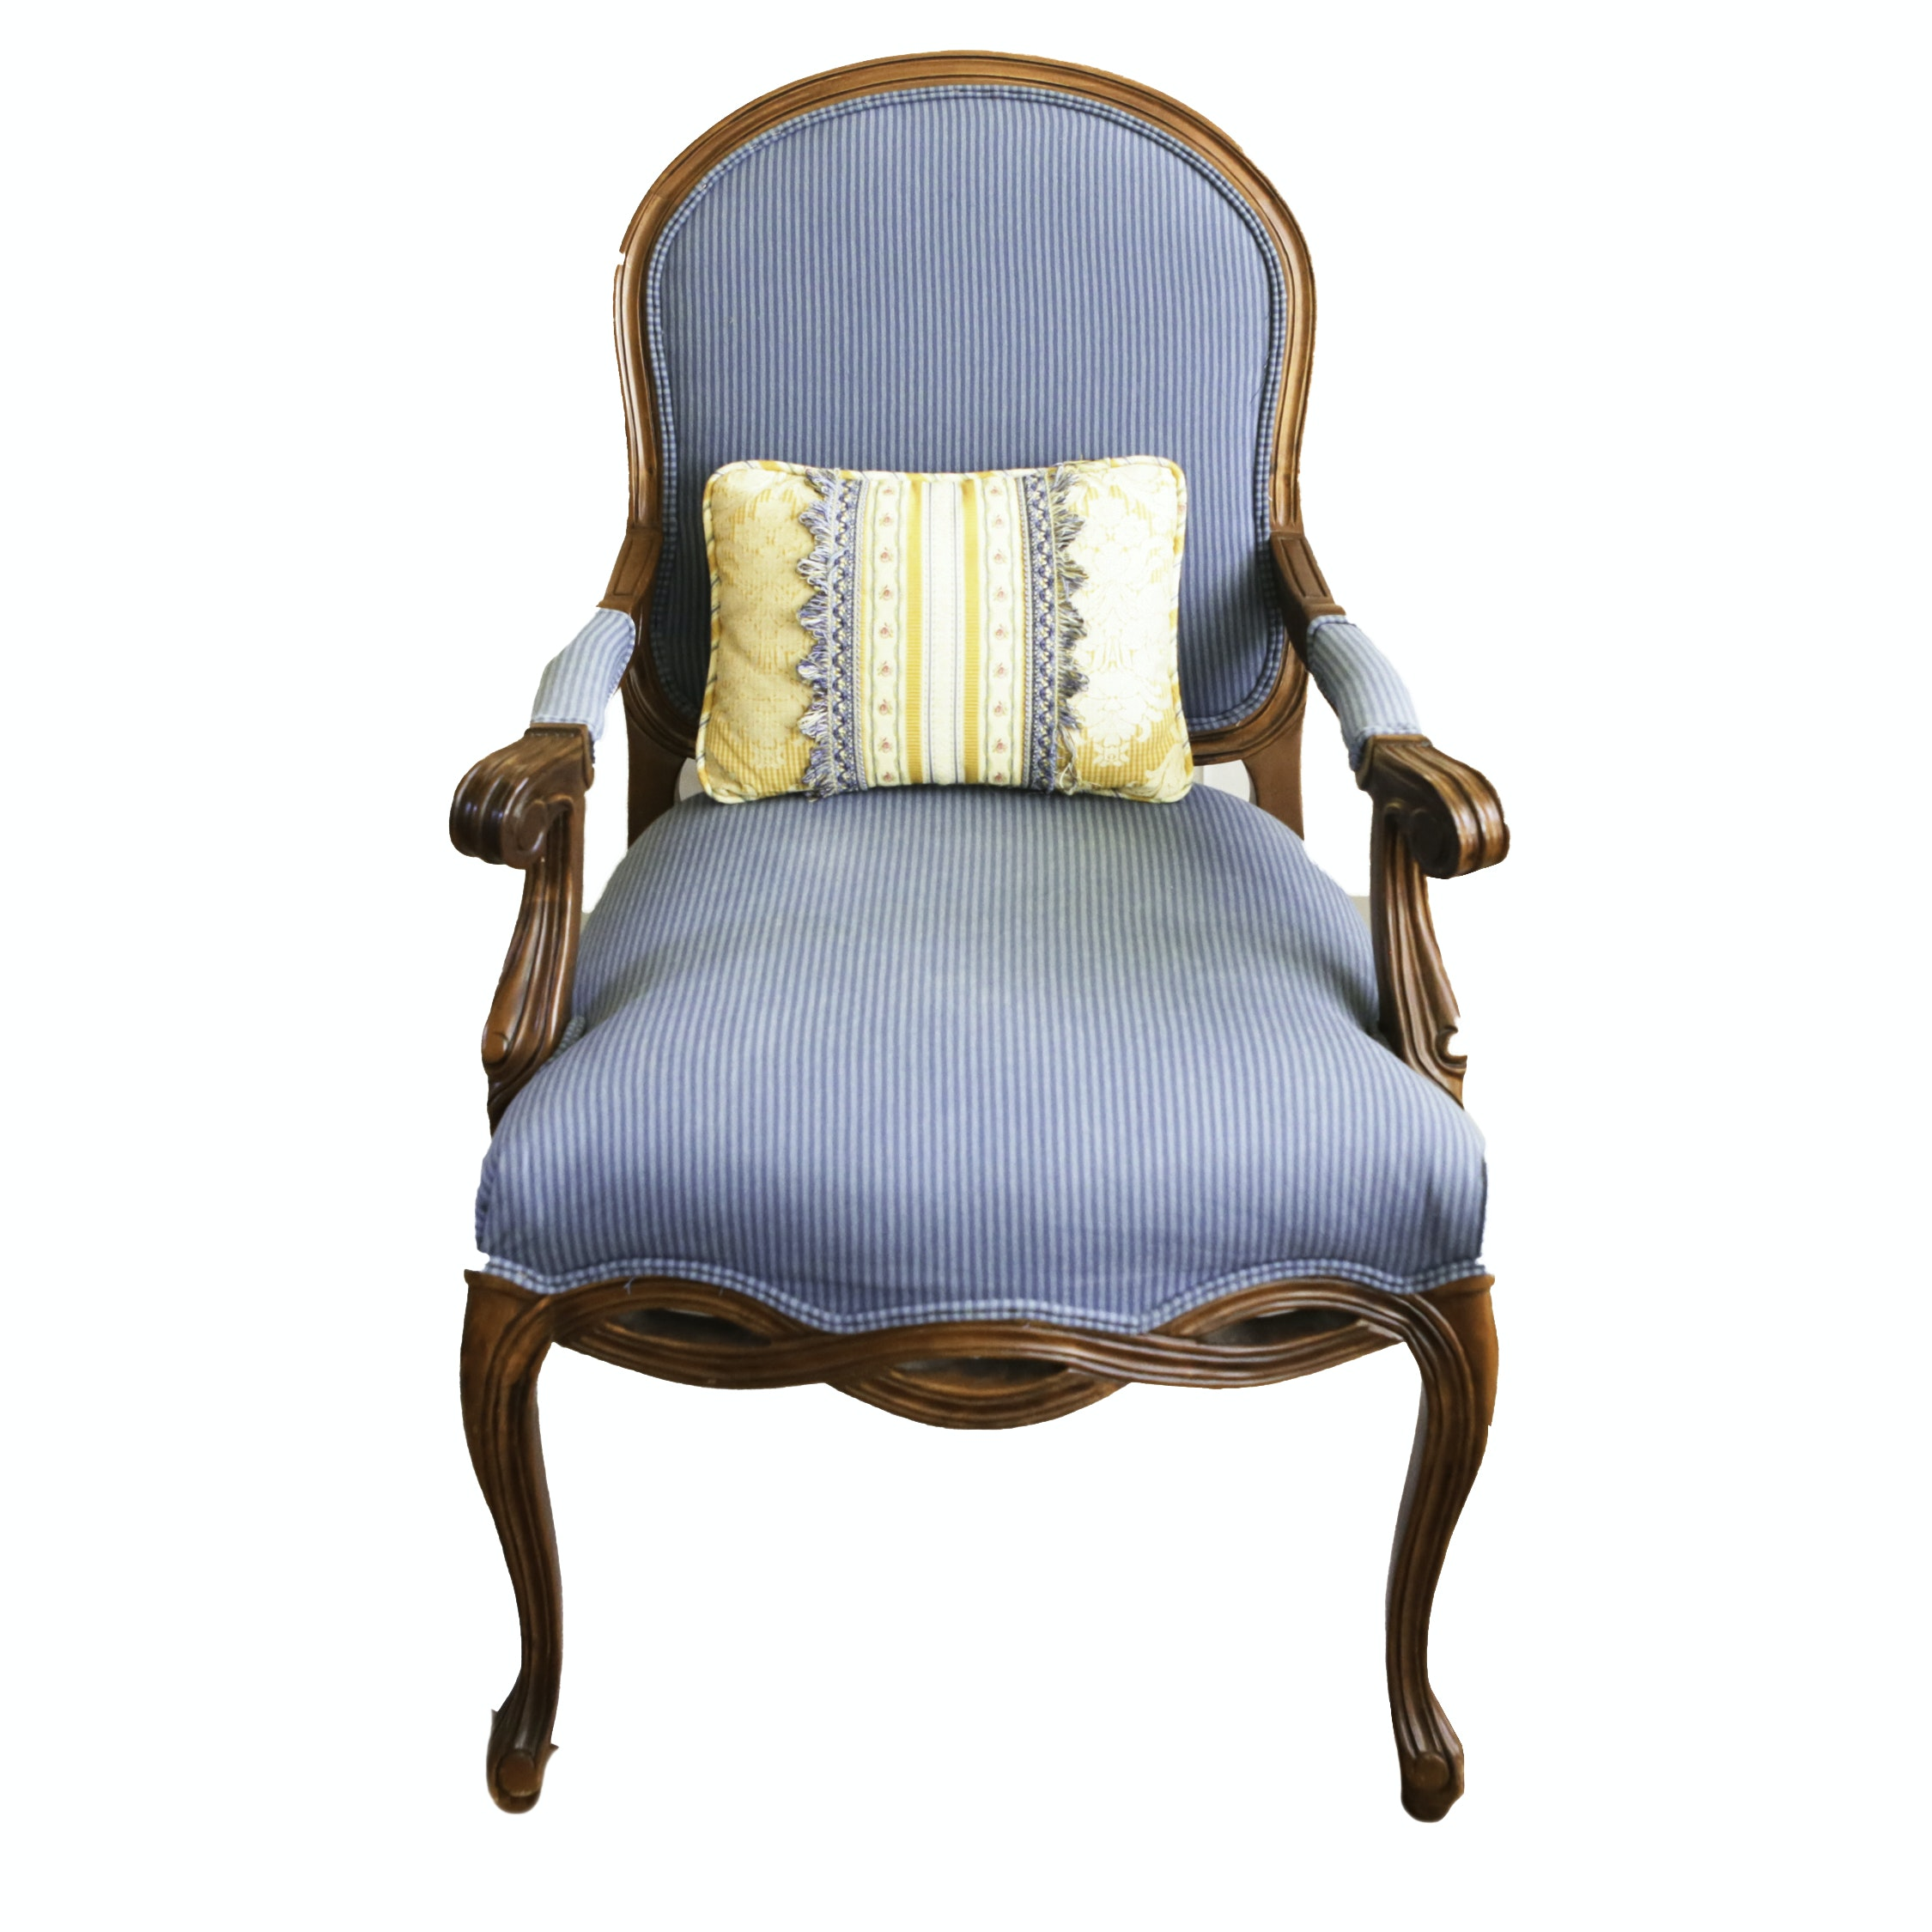 Wooden Fauteuil Armchair with Blue Upholstery and Pillow